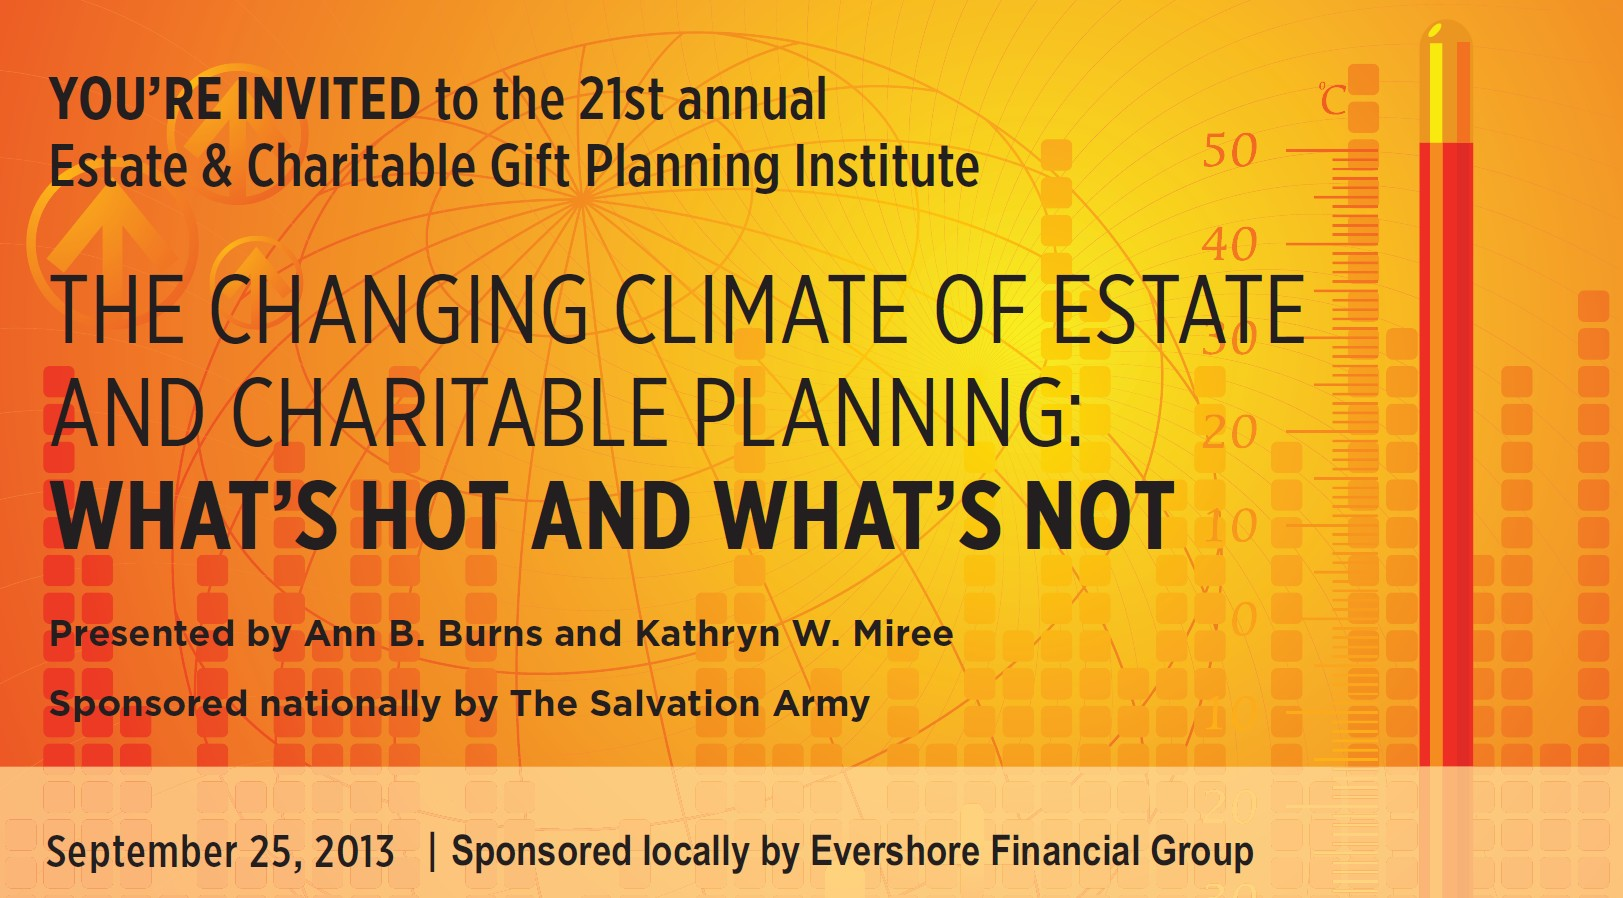 21st Annual Estate & Charitable Giving Event